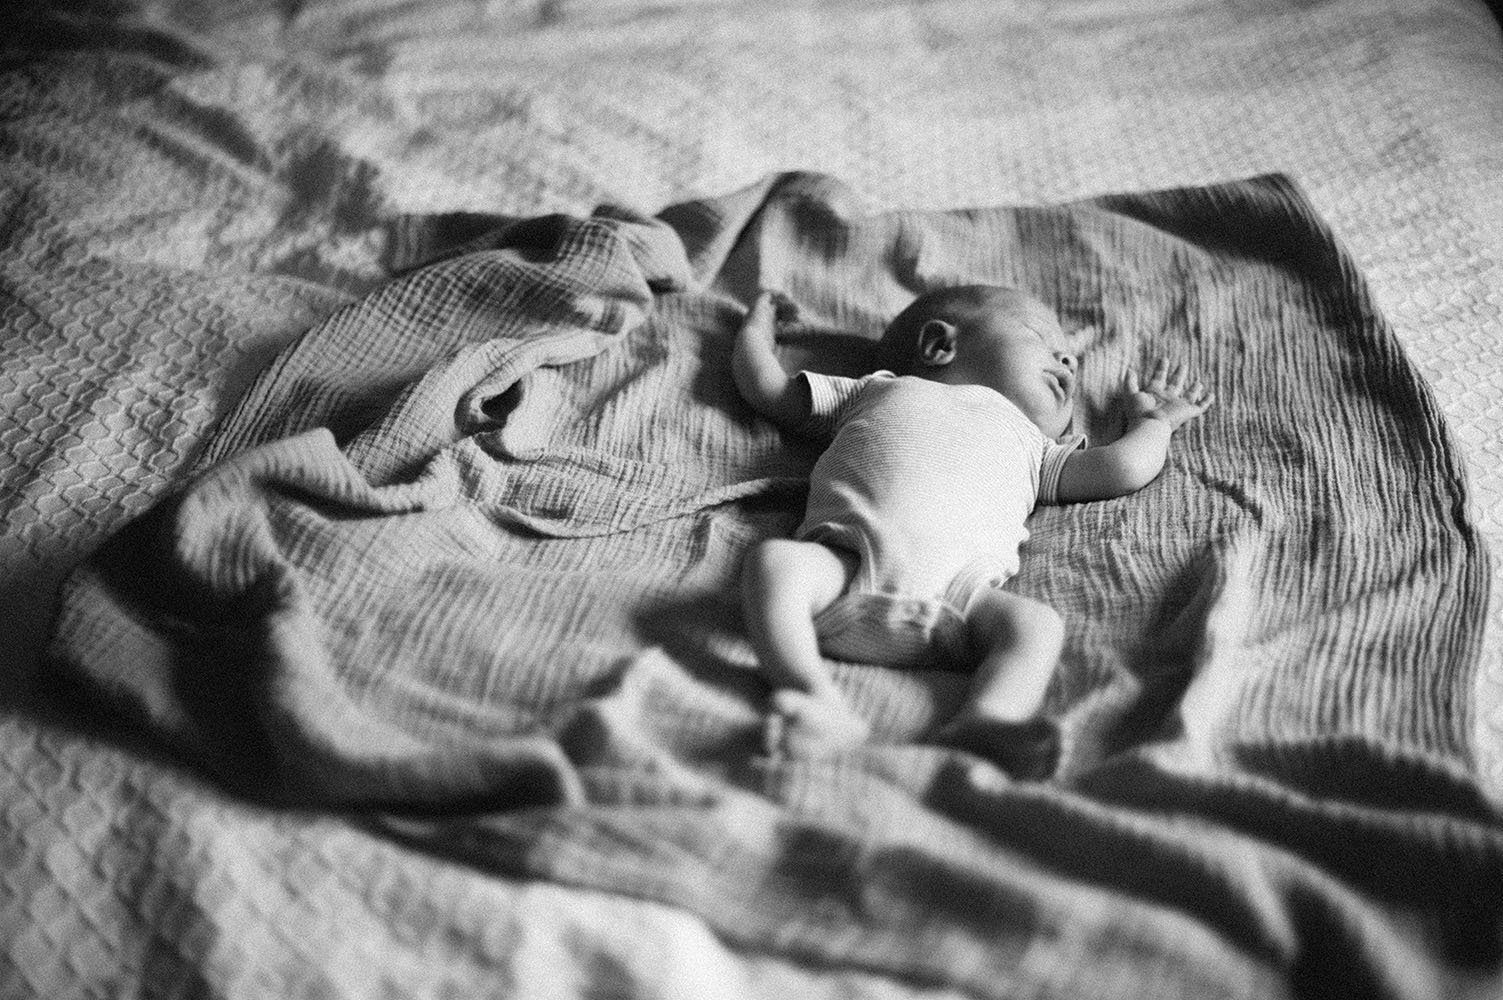 Newborn baby on bed